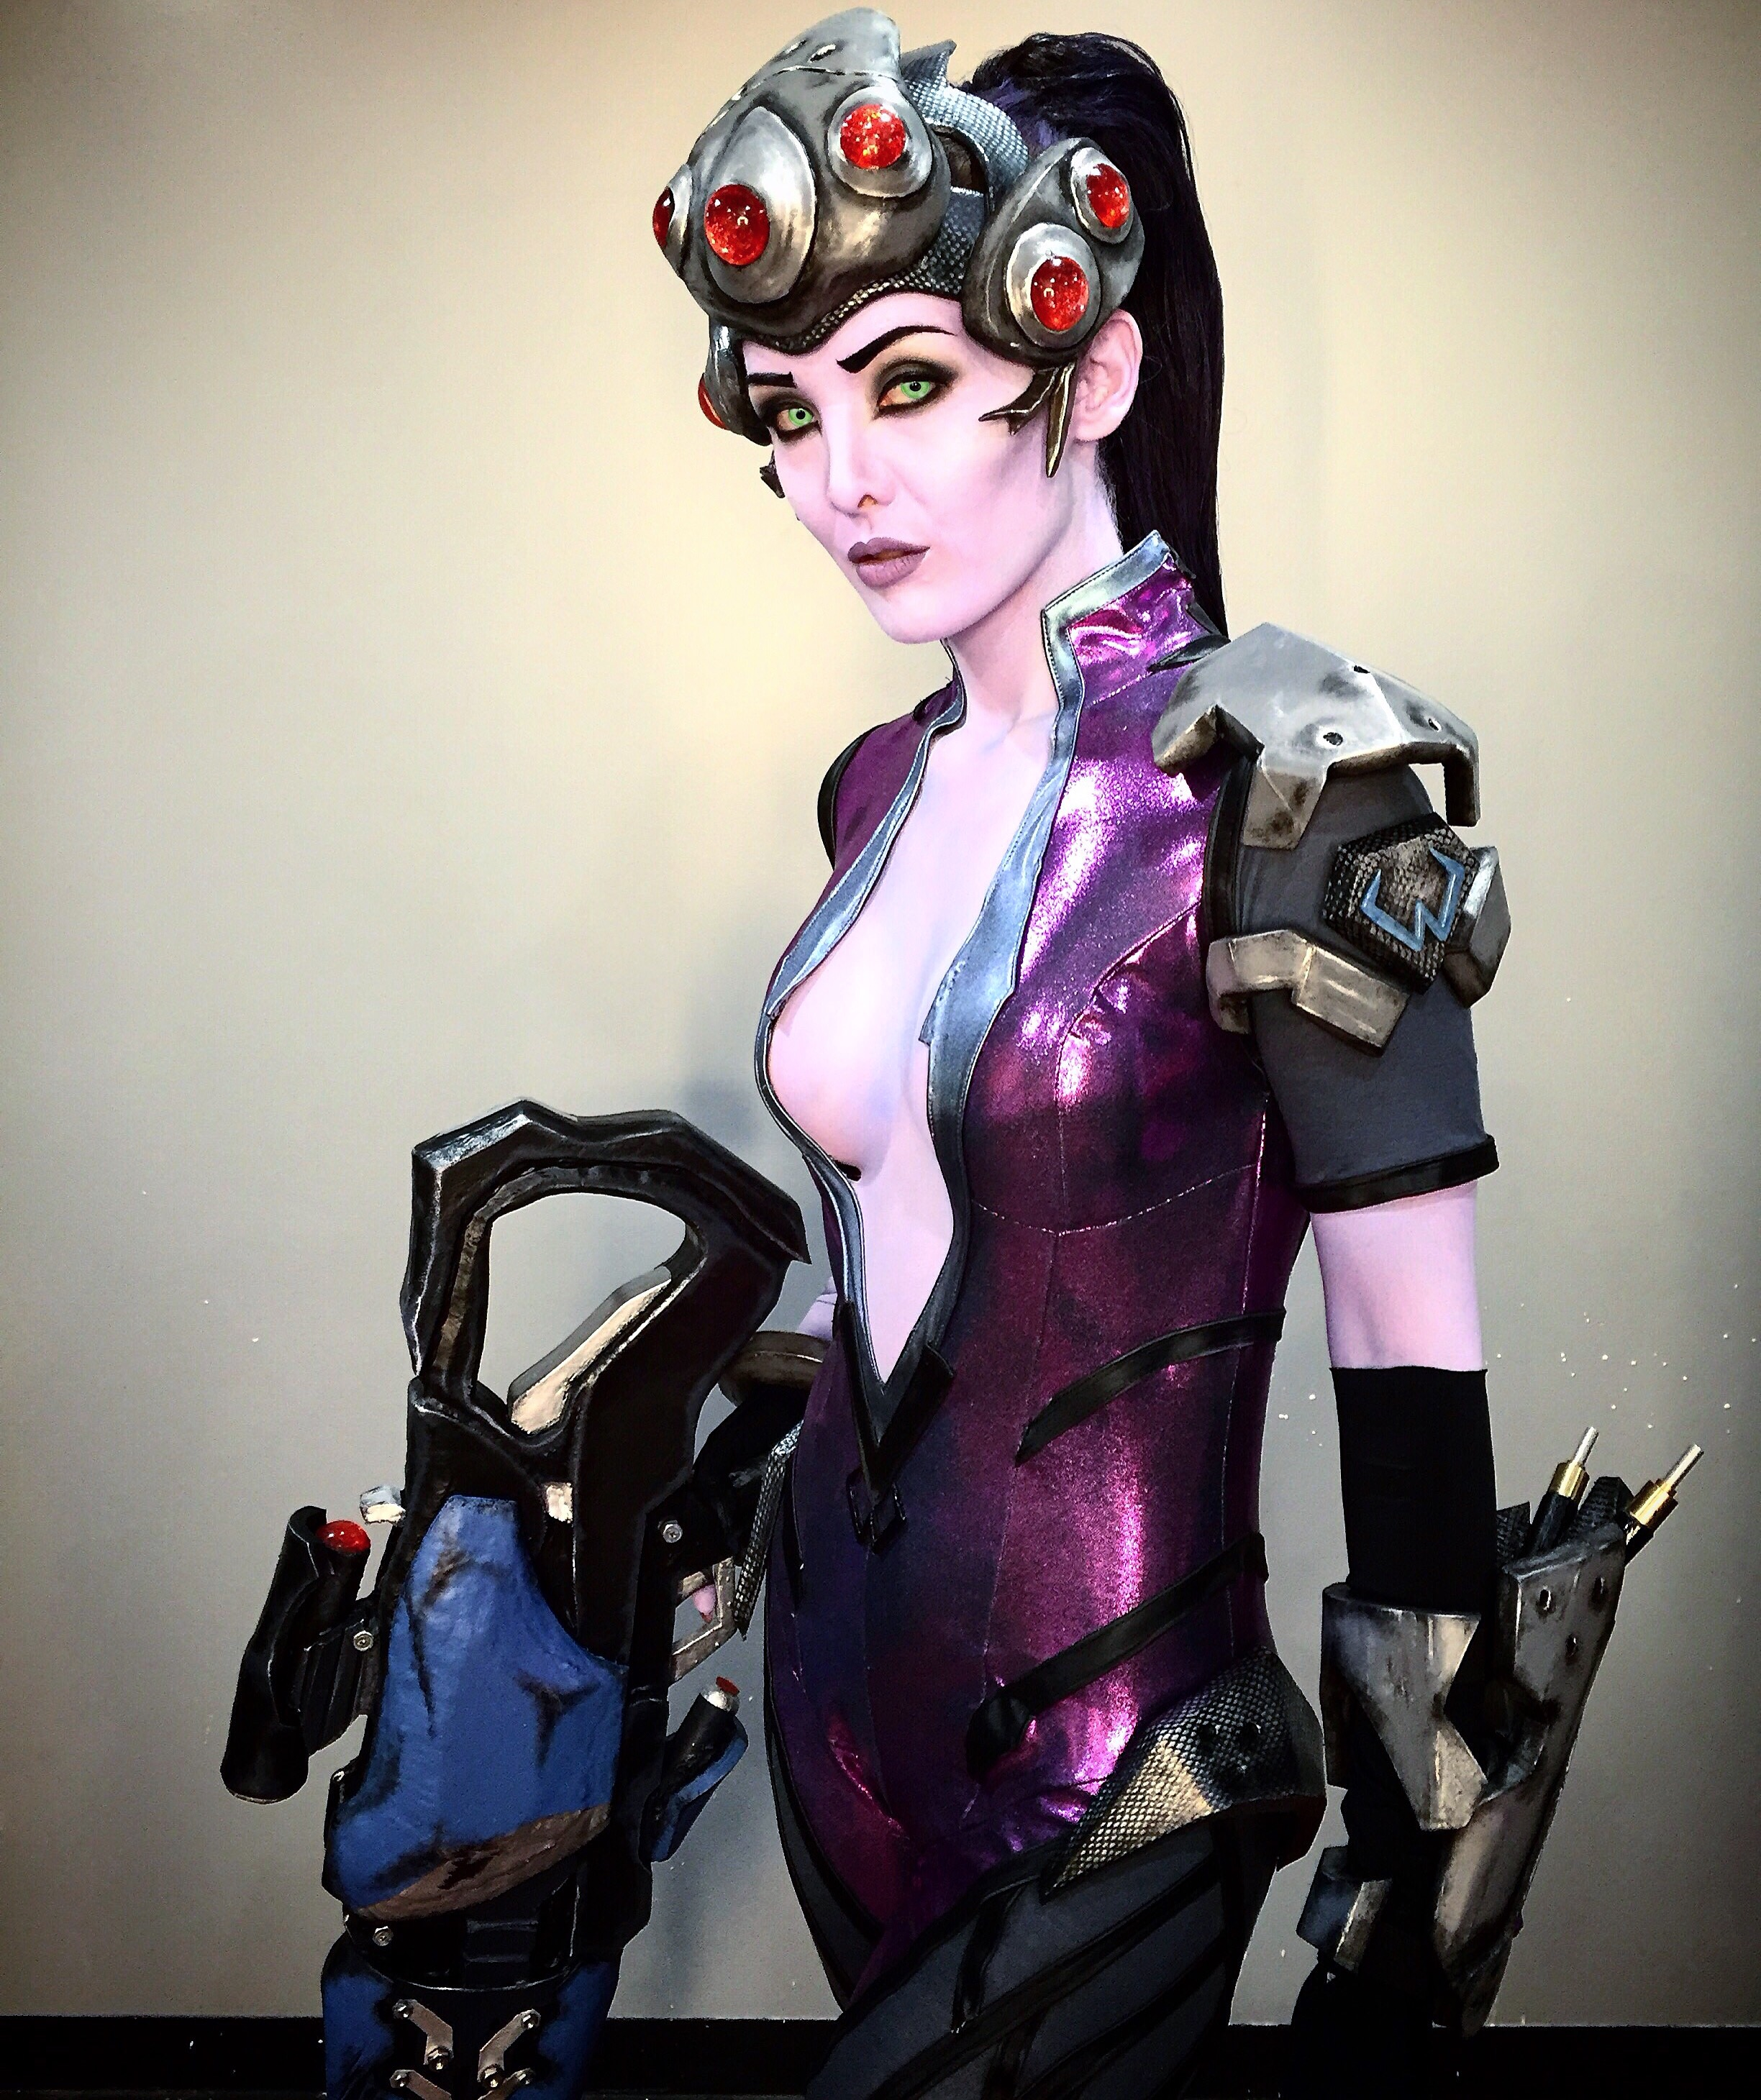 "Overwatch ""Widowmaker"" character design.   Makeup Artist: Hannah Reed. Wardrobe by Alex Waldron. Hair by Brooke Barker.   Designed for Tinsley Transfers Social Media."